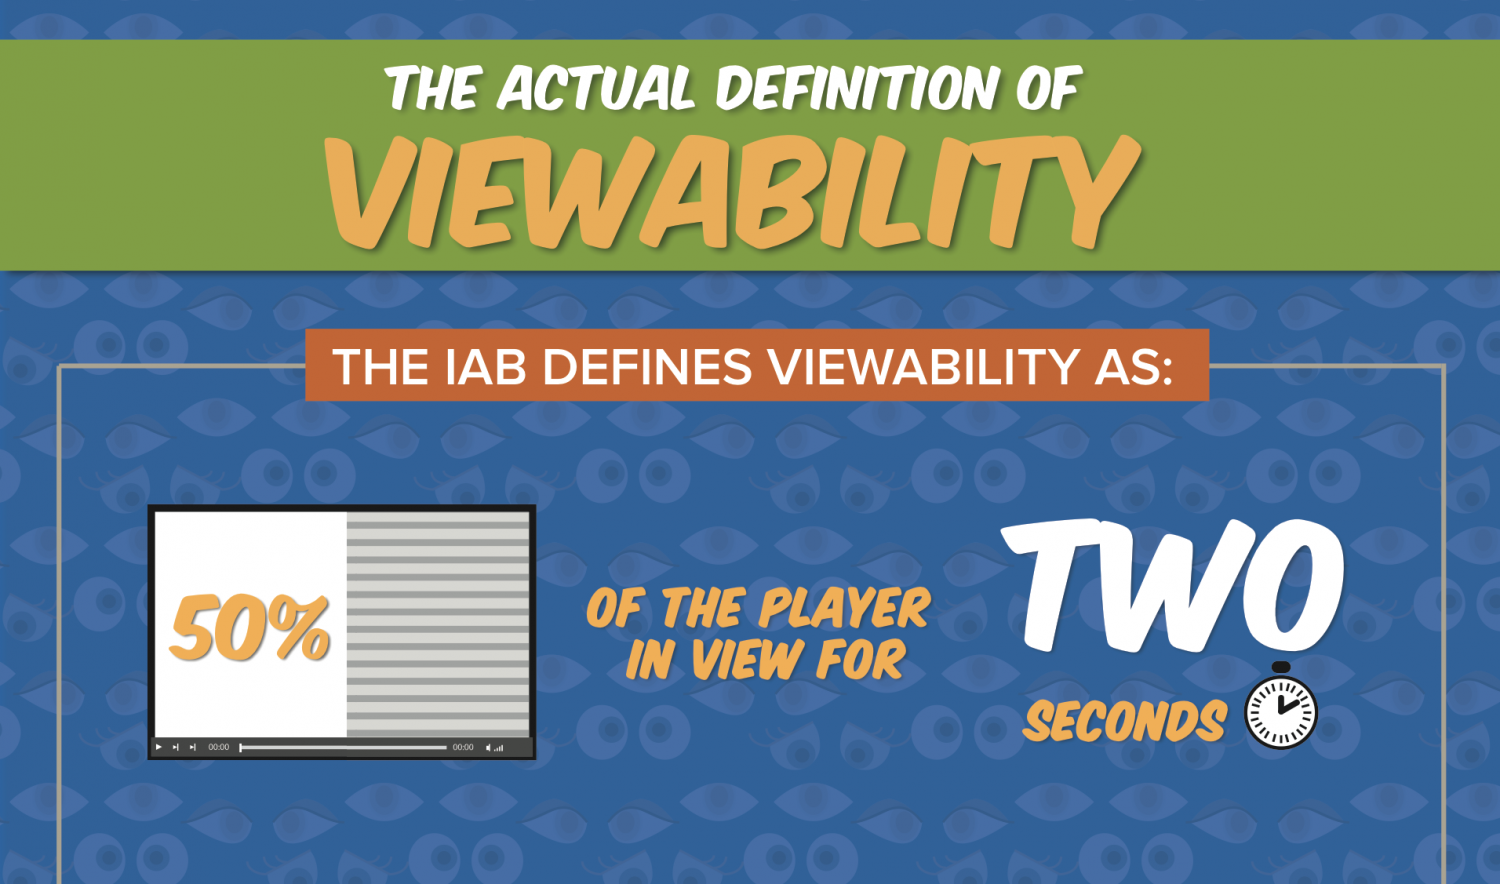 The Actual Definition of Viewability Infographic